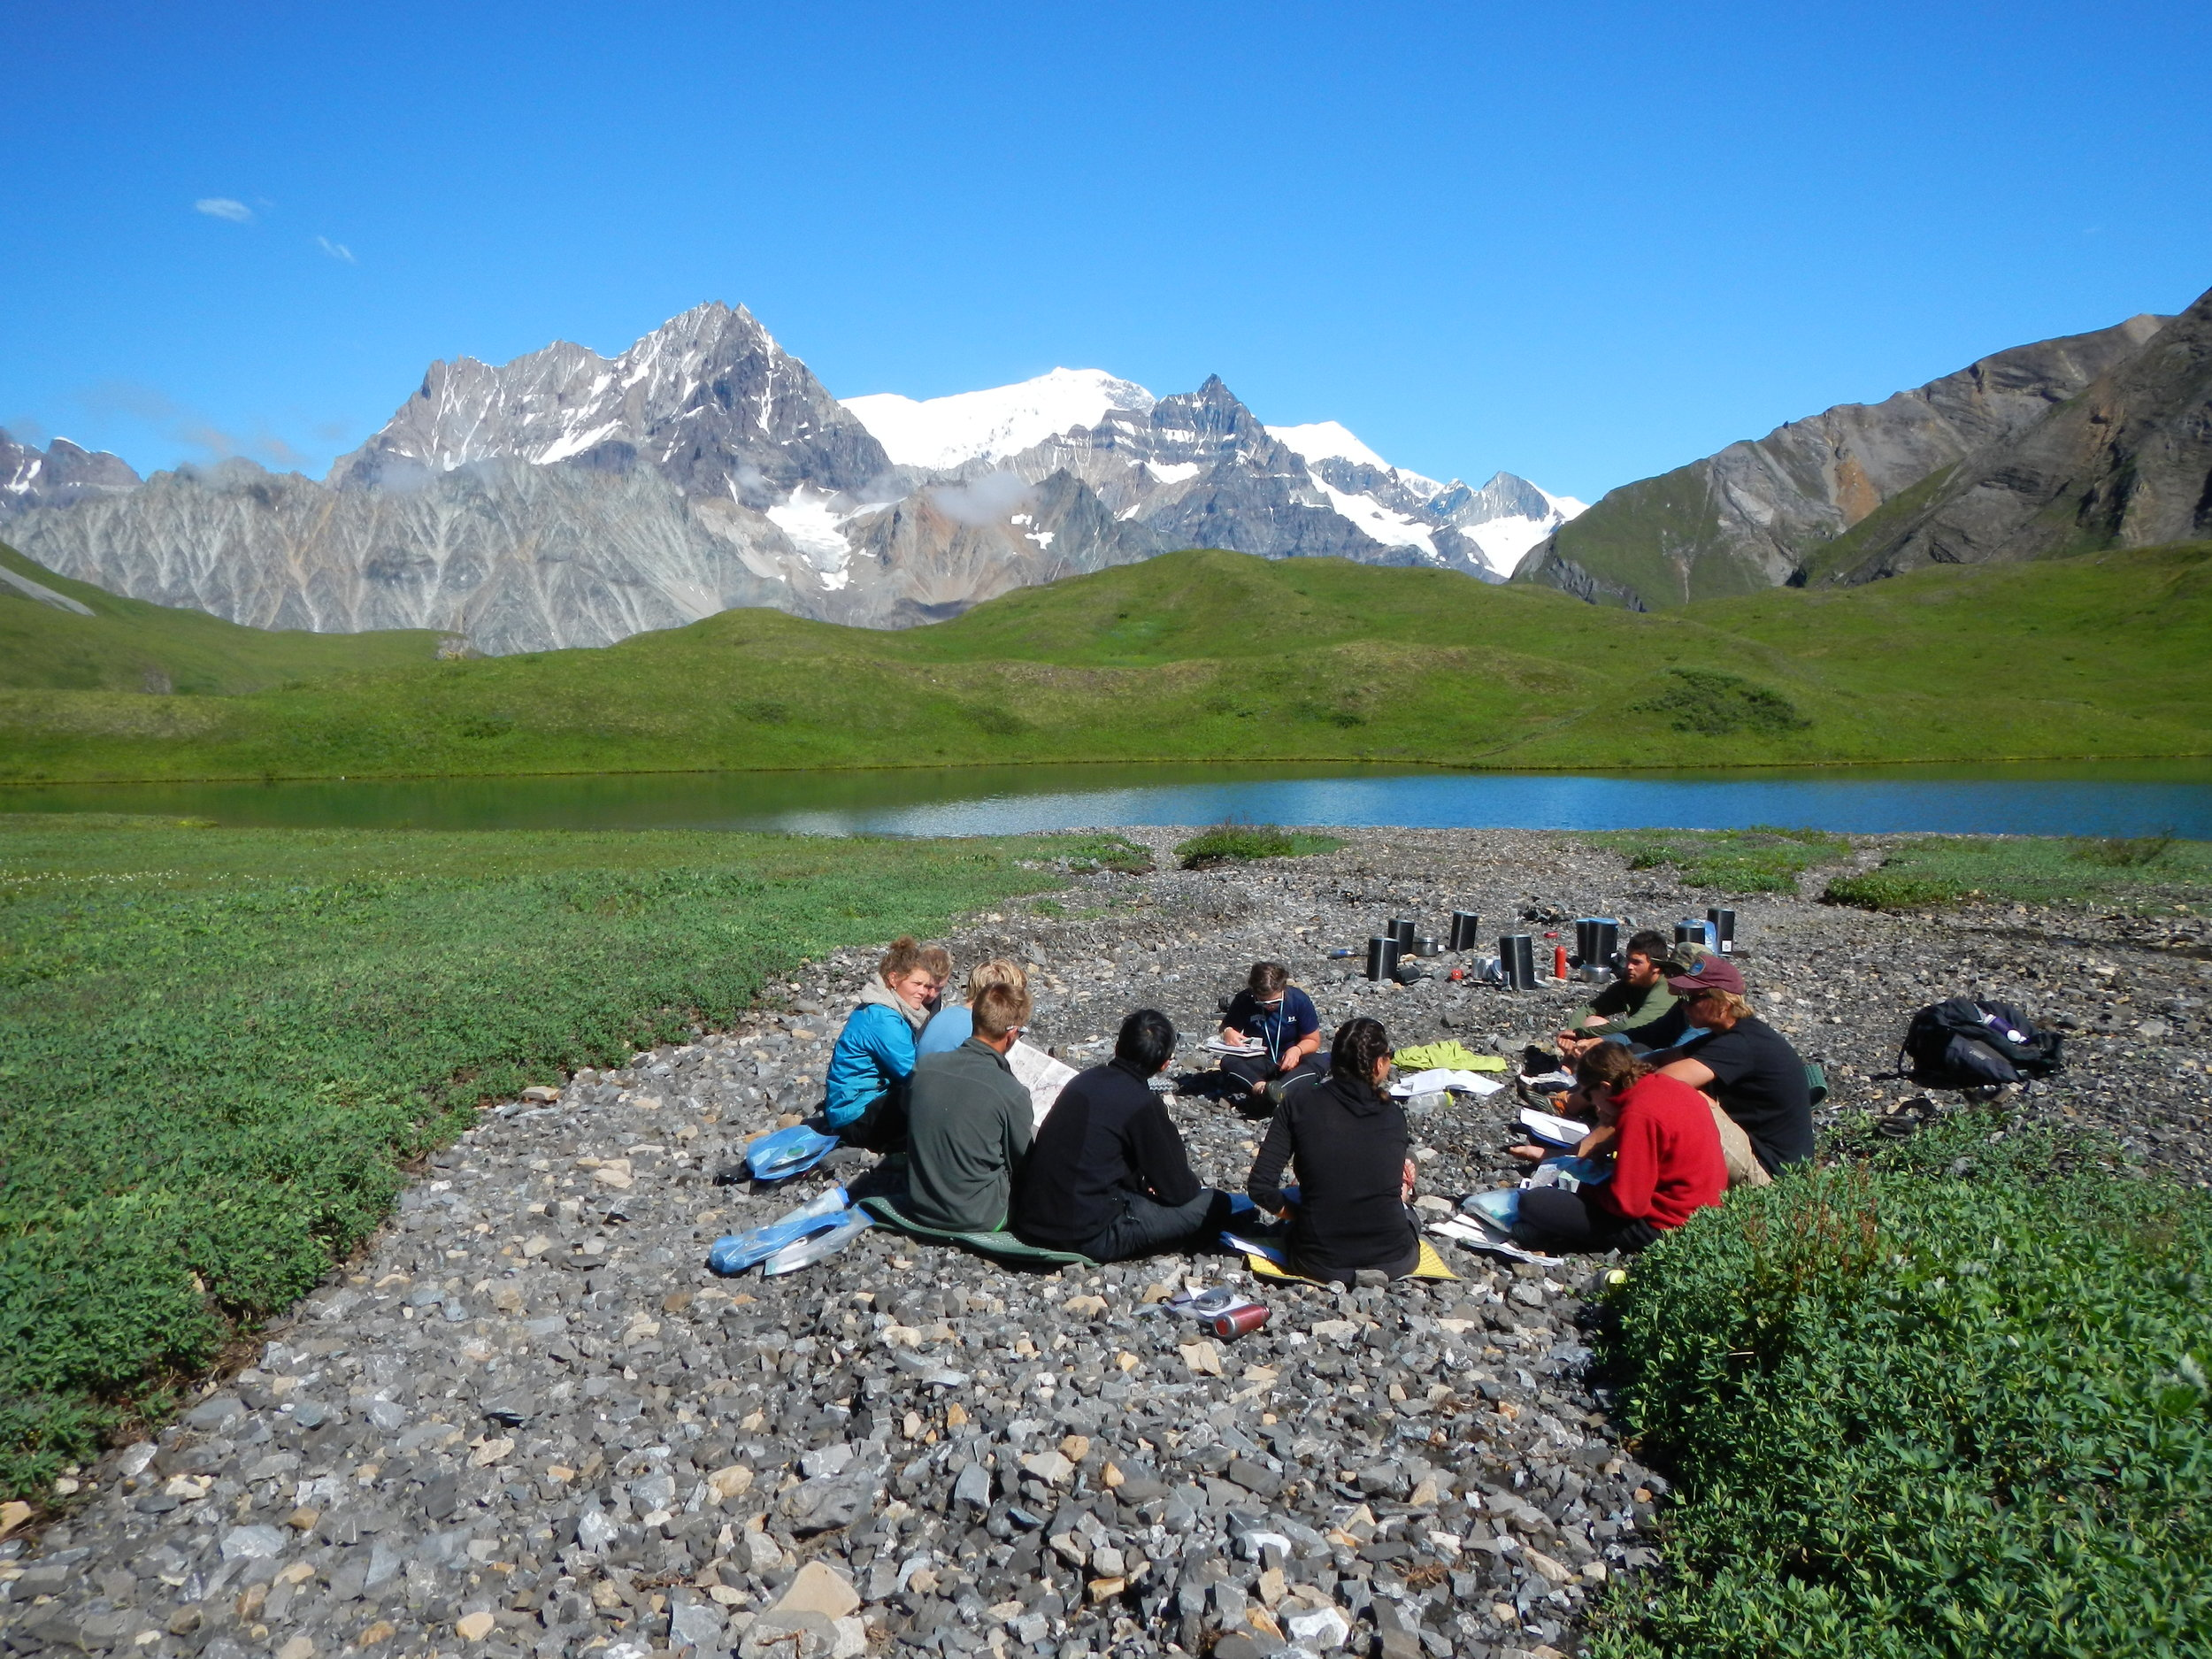 A discussion group in the back-country of Wrangell-St. Elias National Park